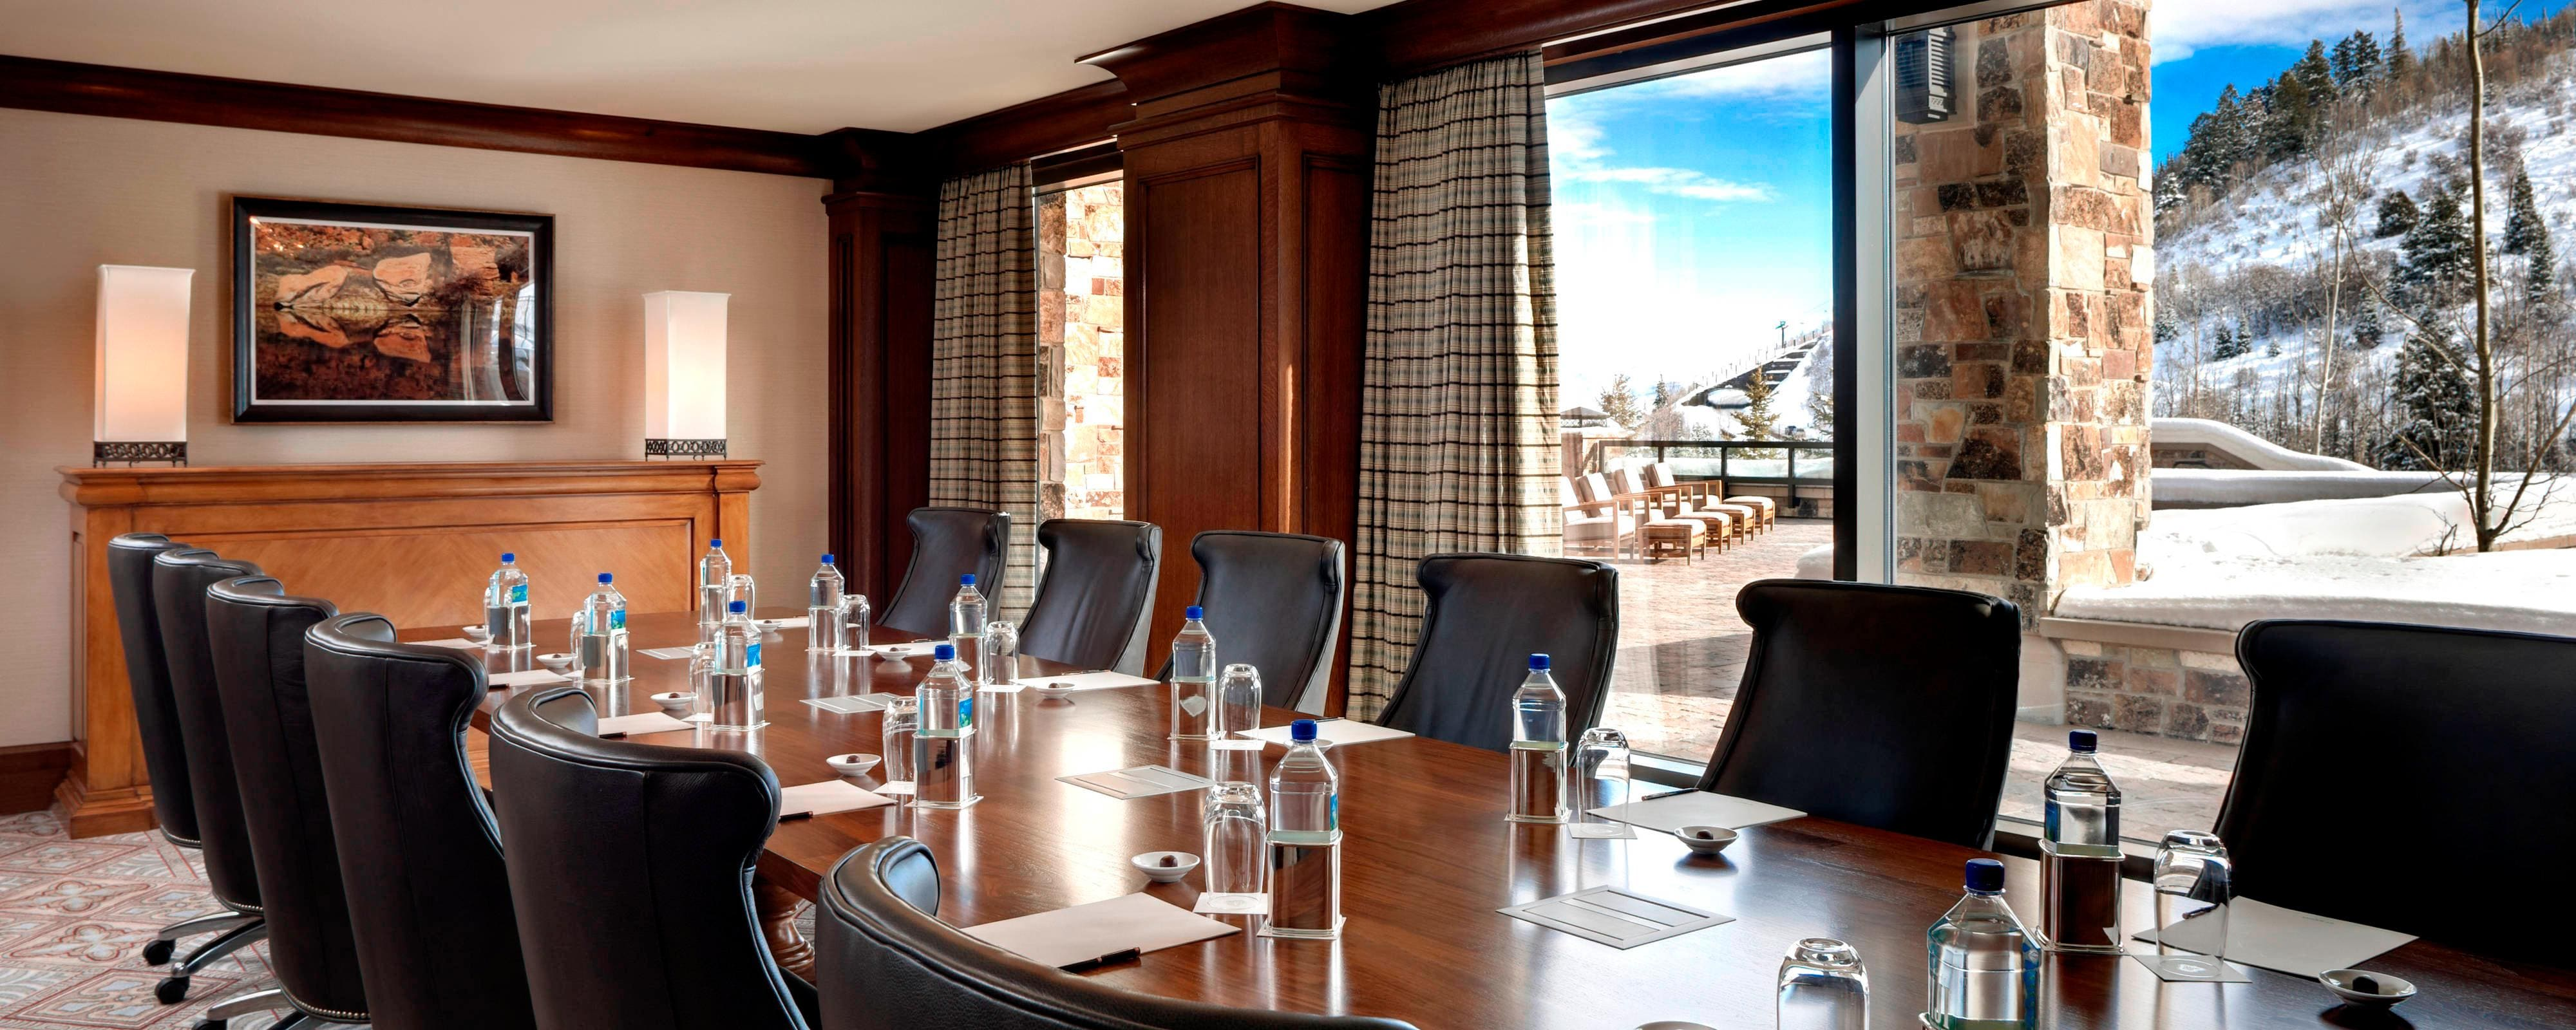 John Jacob Astor Boardroom